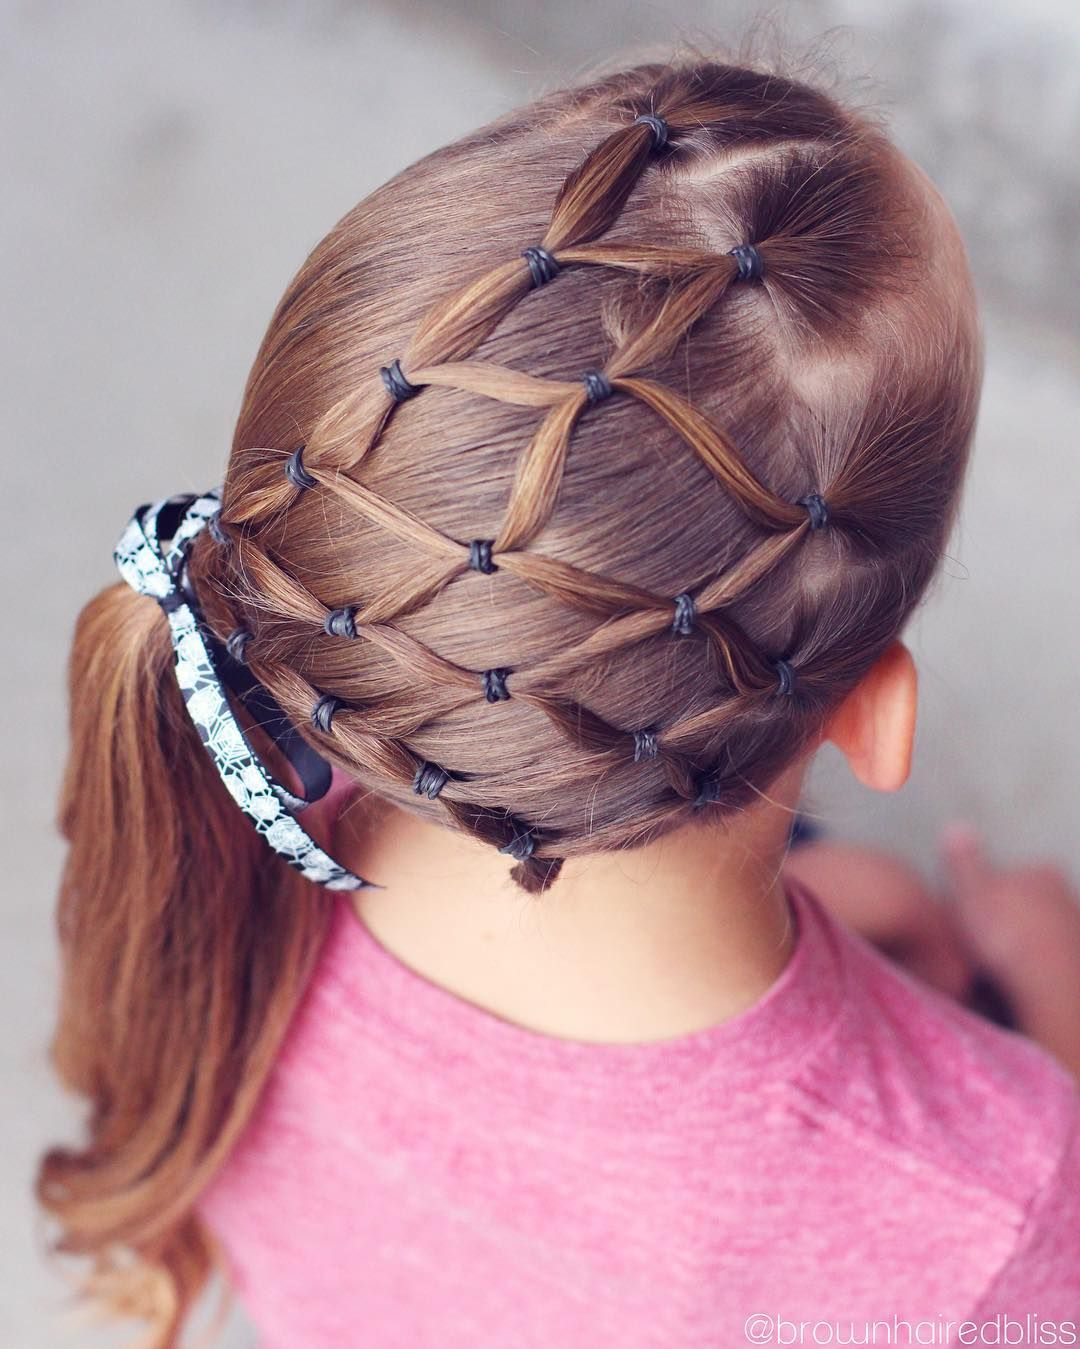 Wondrous Elastic Spiderweb Into A Side Ponytail With A Fun Halloween Ribbon Natural Hairstyles Runnerswayorg